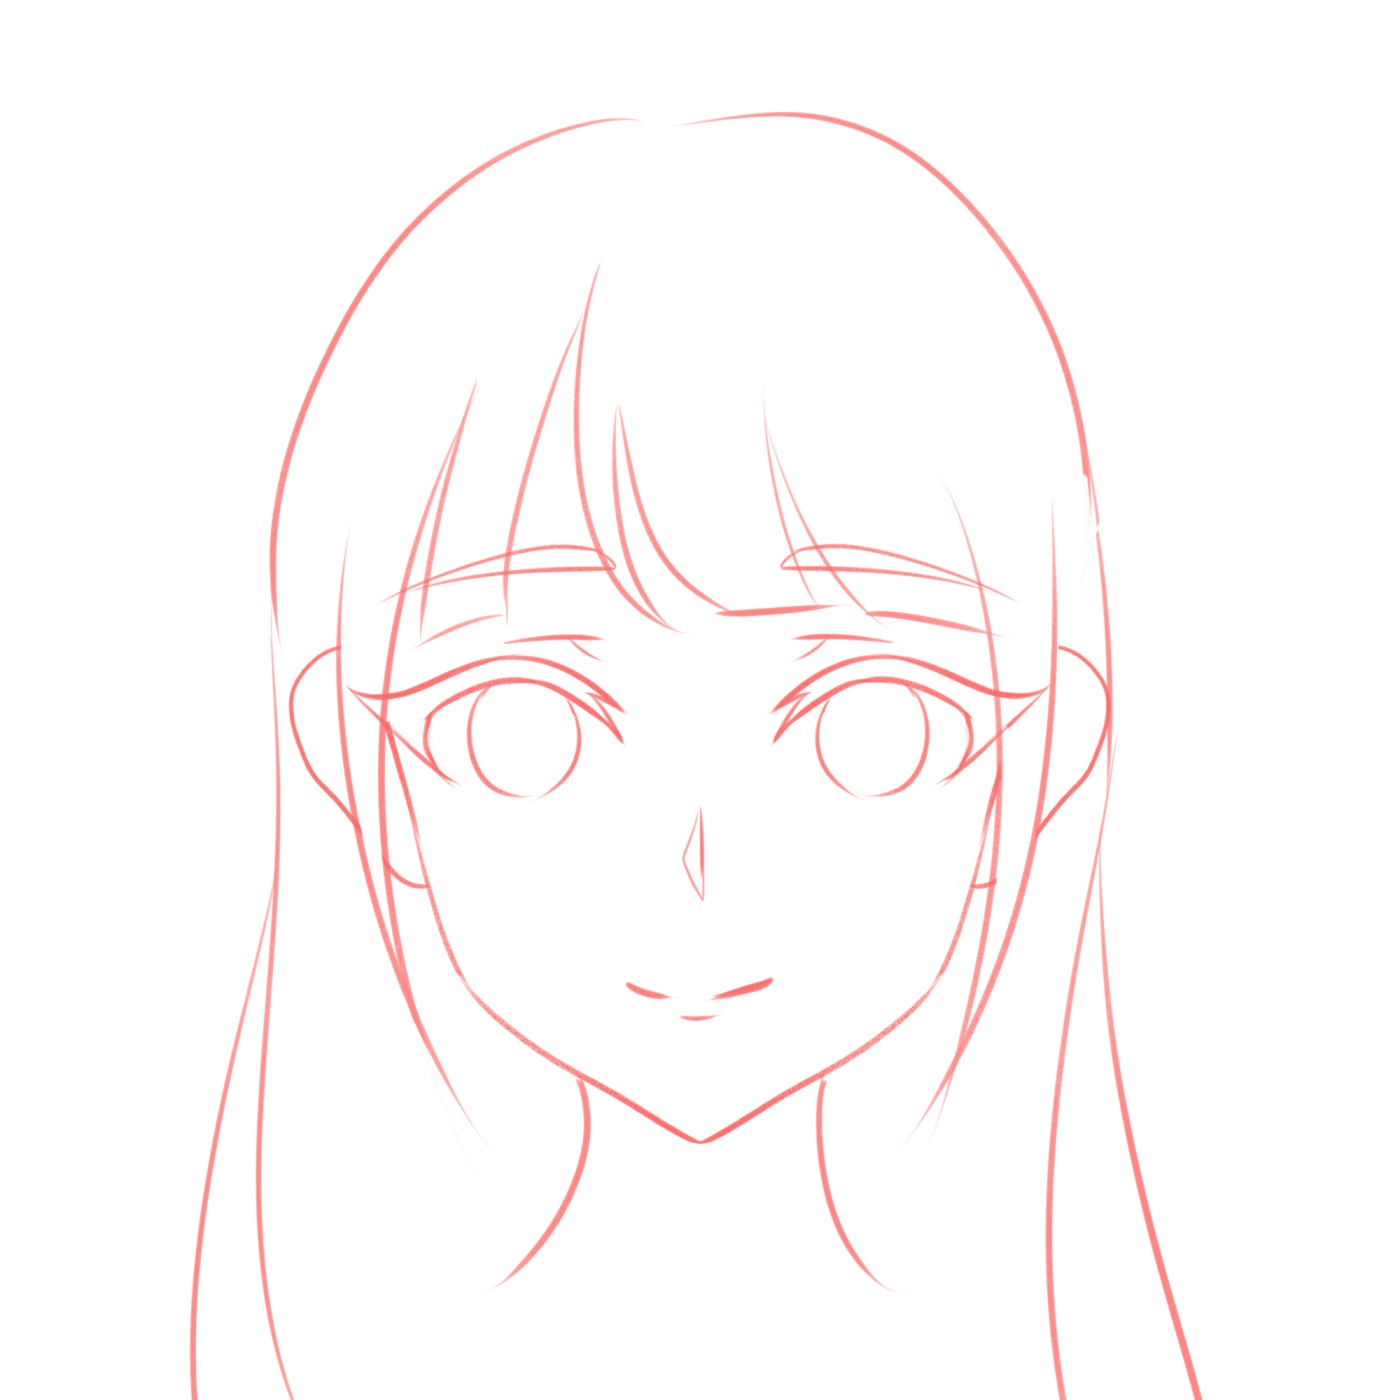 How To Draw The Head And Face Anime Style Guideline Front View Tutorial Mary Li Art